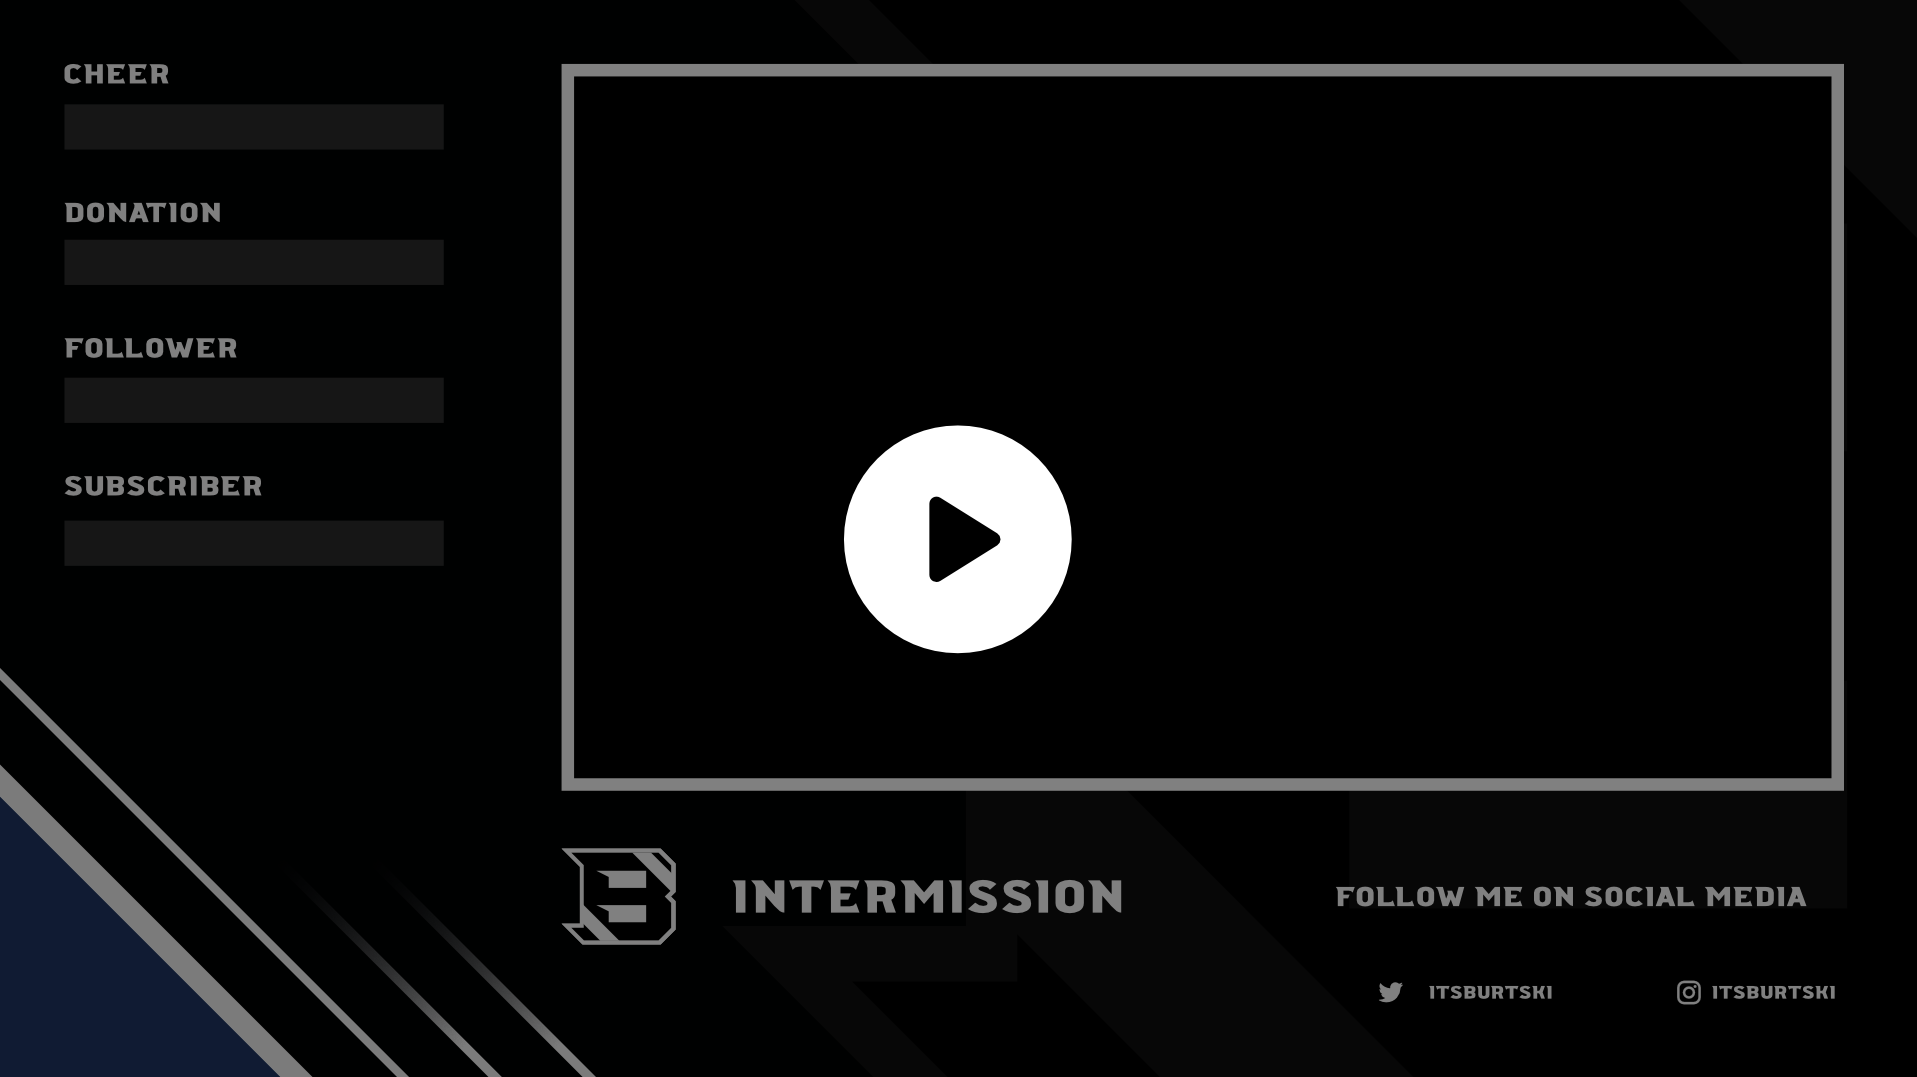 Animated intermission screen for Twitch using a simple blue and black theme